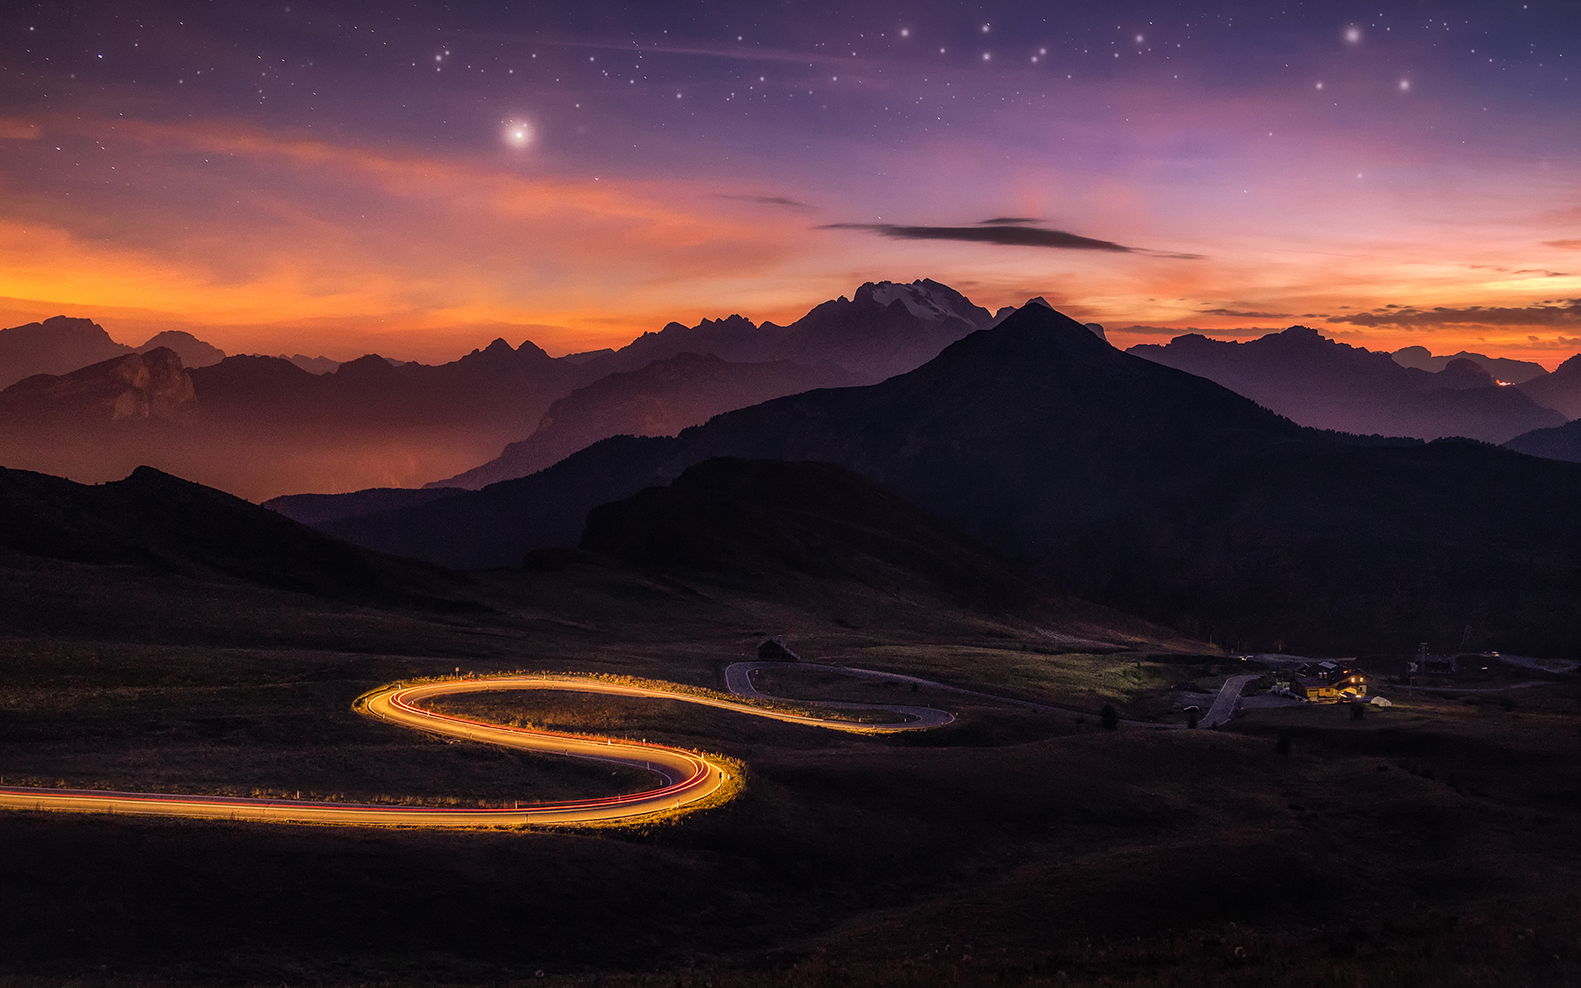 Passo giau starry night